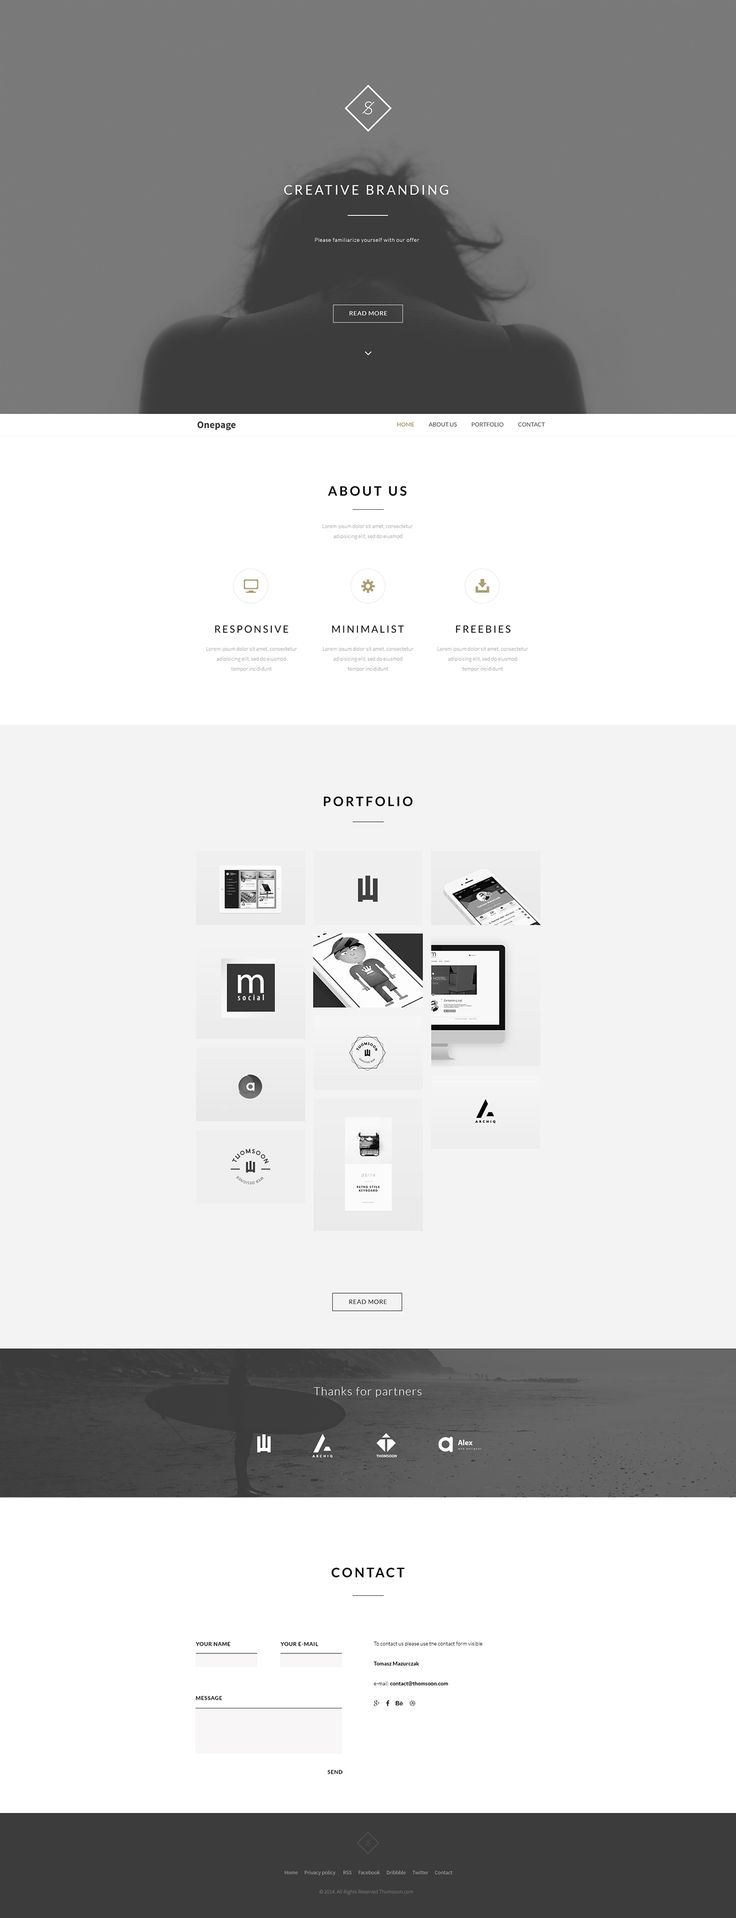 Free responsive modern and clean HTML5, CSS3 and Jquery.One Page minimalist website with content about us, portfolio and contact form. Full screen intro with Parallax. Navigation is sticky to top - header. Additionally Behance API with your portfolio.